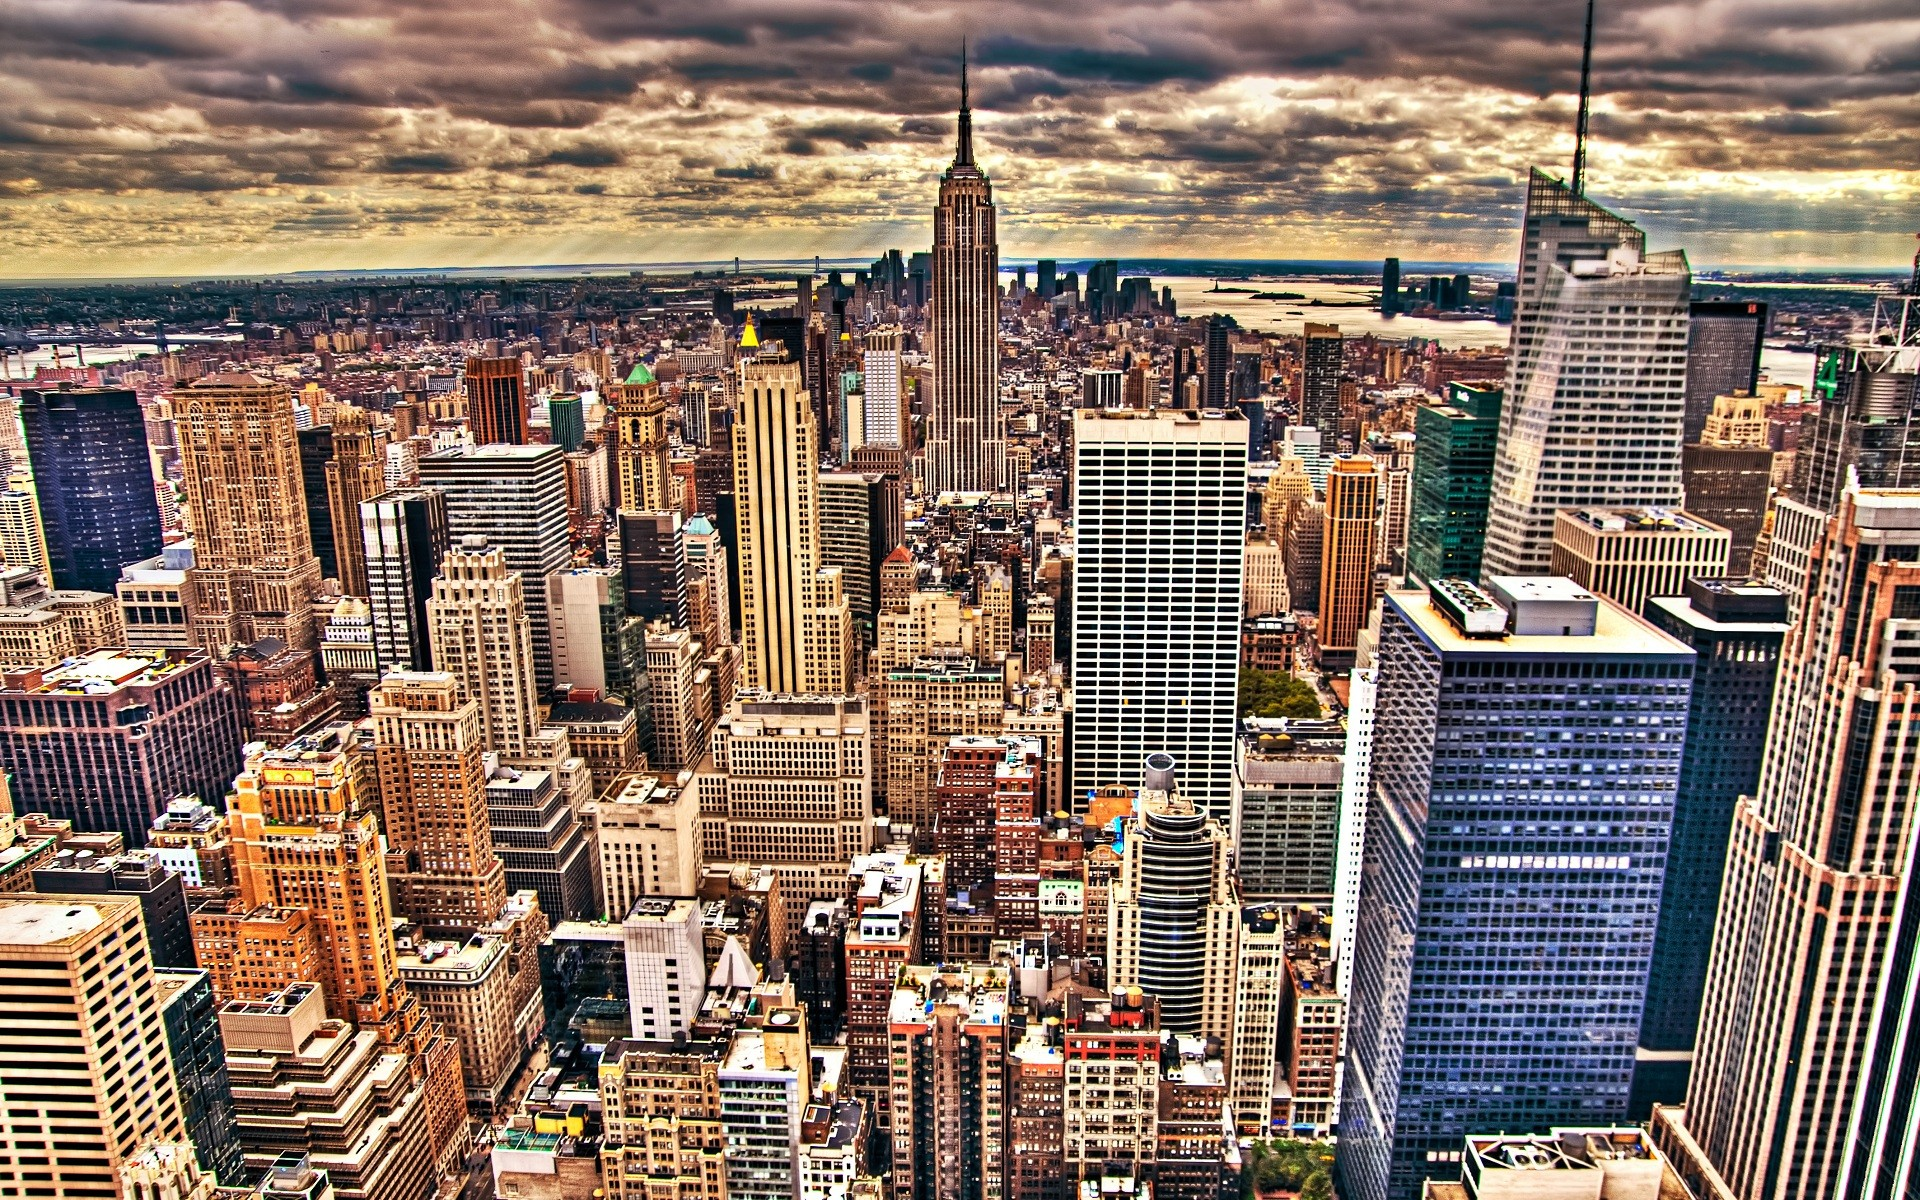 Skyline New York City Wallpaper Wallpaper Free Download 1920x1200